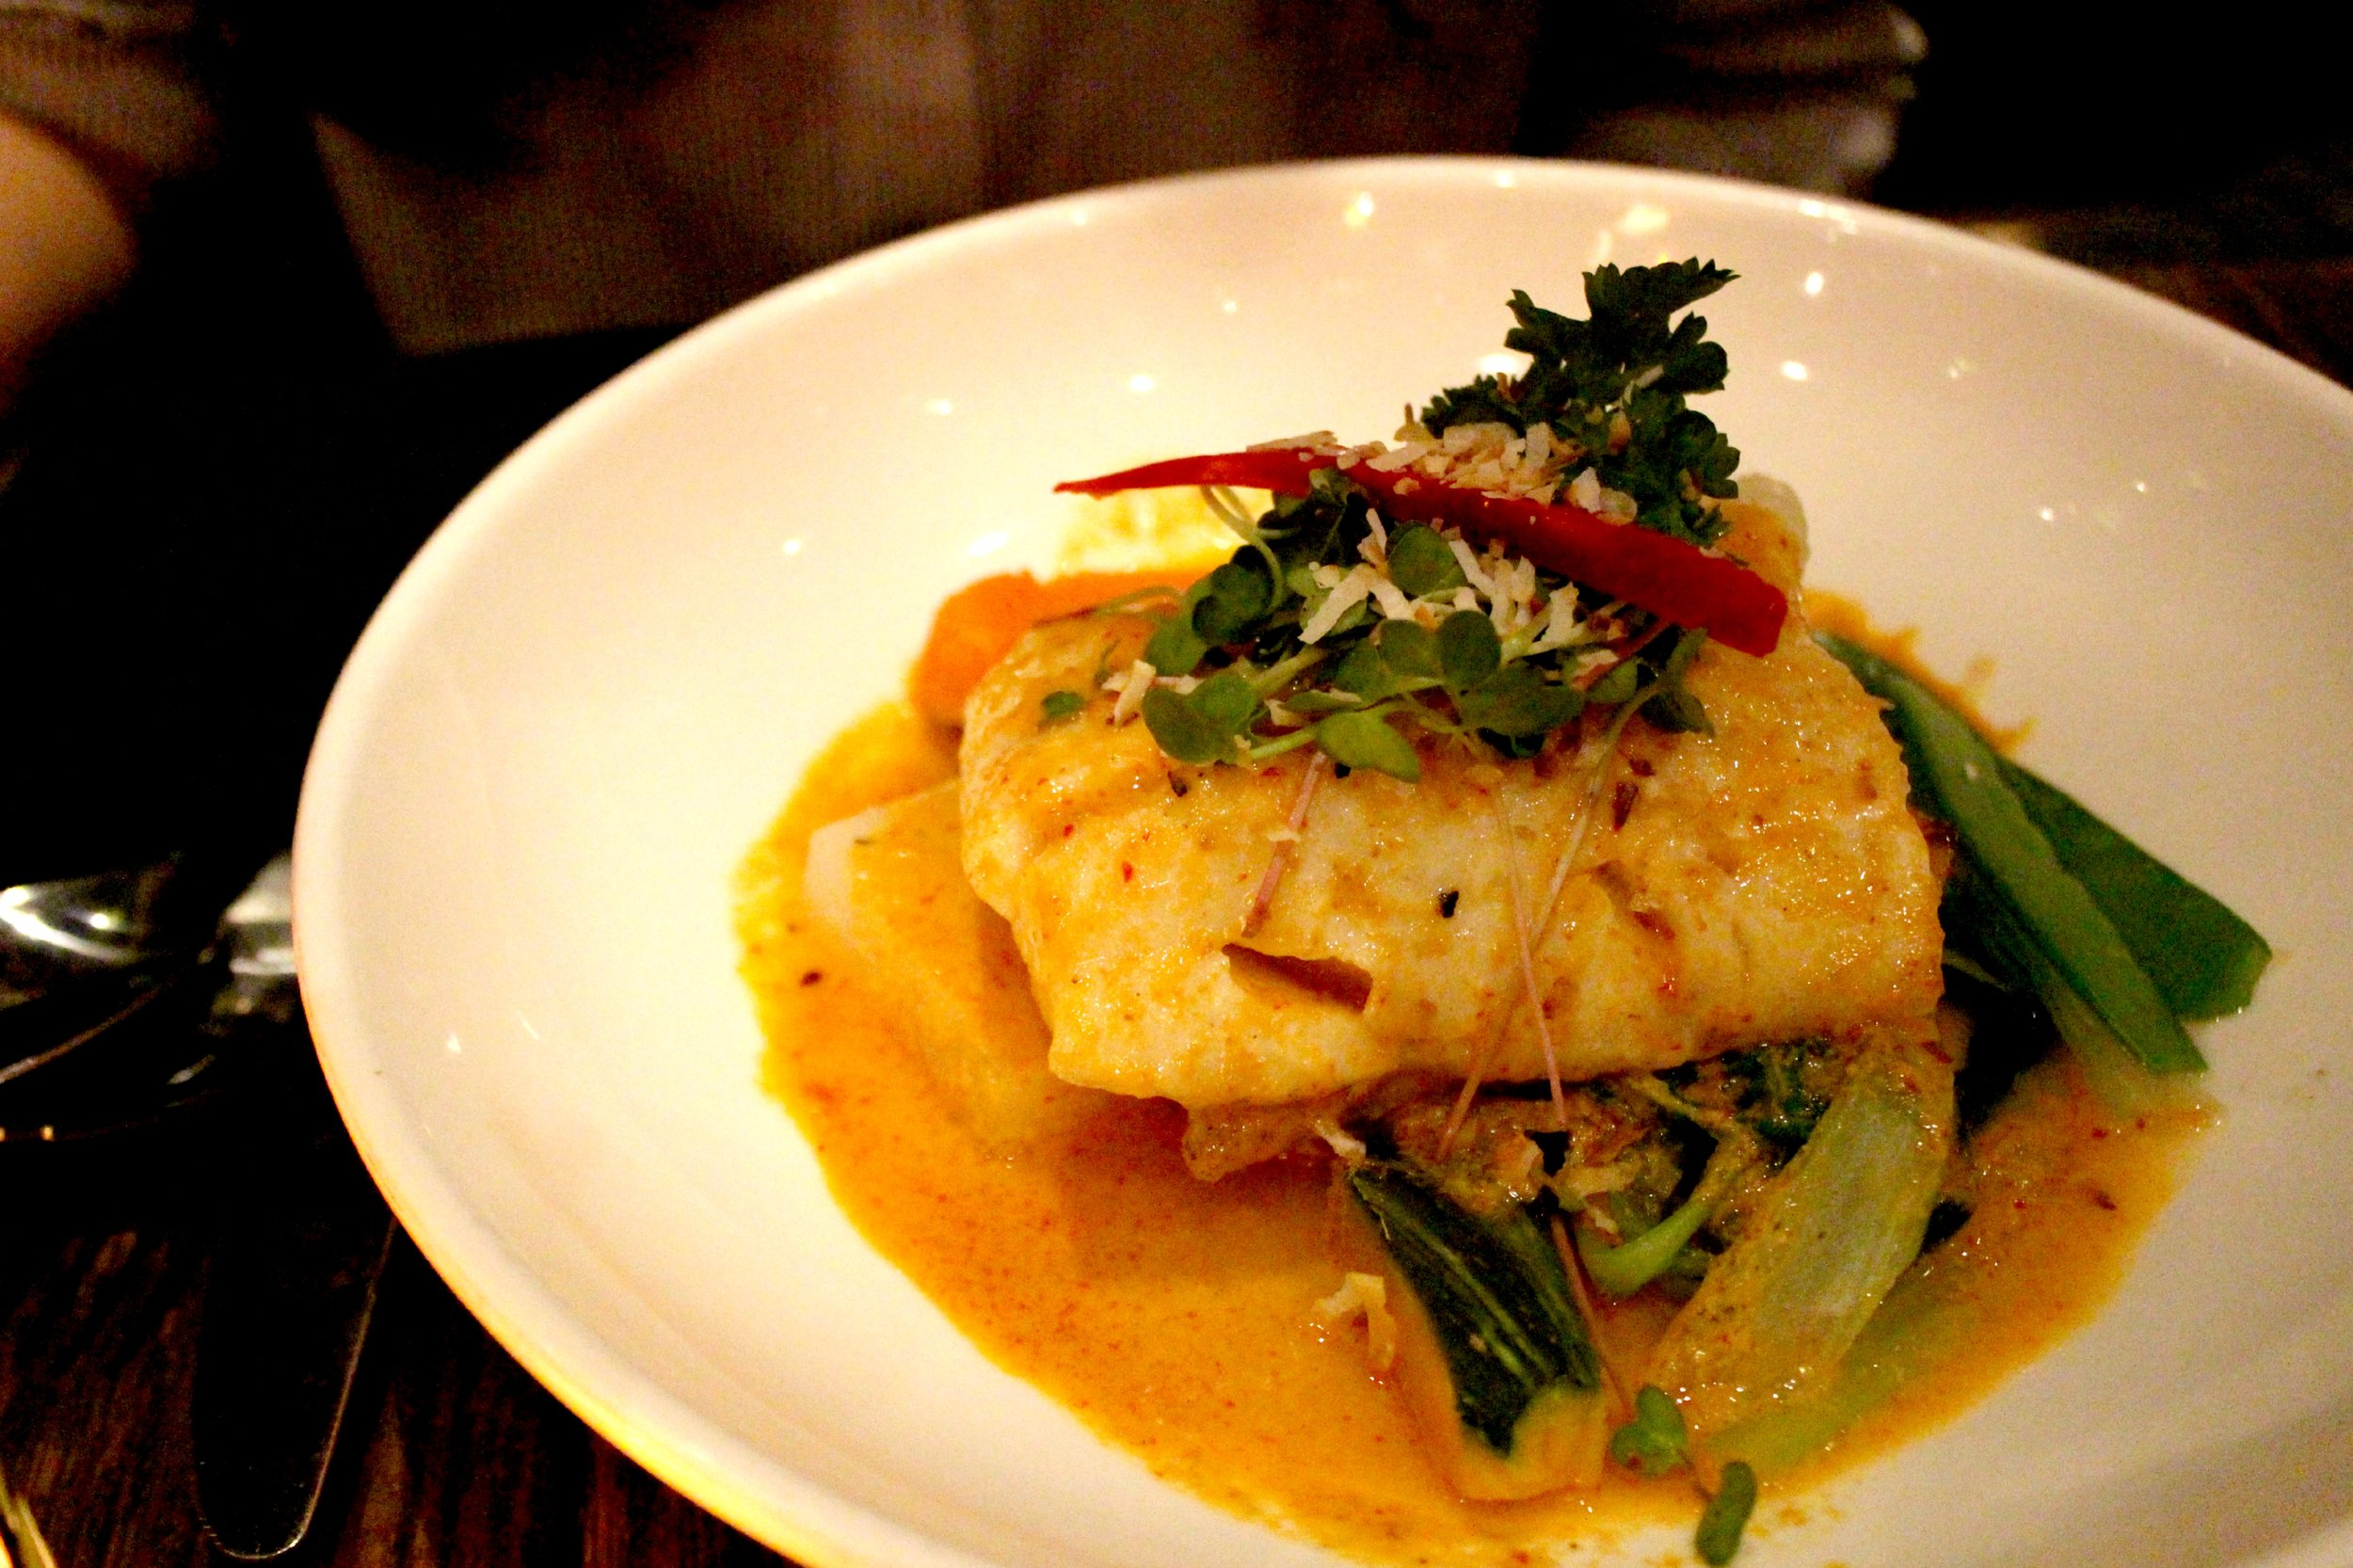 Cod Shu Shee: Pan Roasted Fillet of Alaskan Cod with Thai Curry, Bell Peppers, Kale, Kaffir Lime Leaves Topped with Coconut Milk at Up Thai